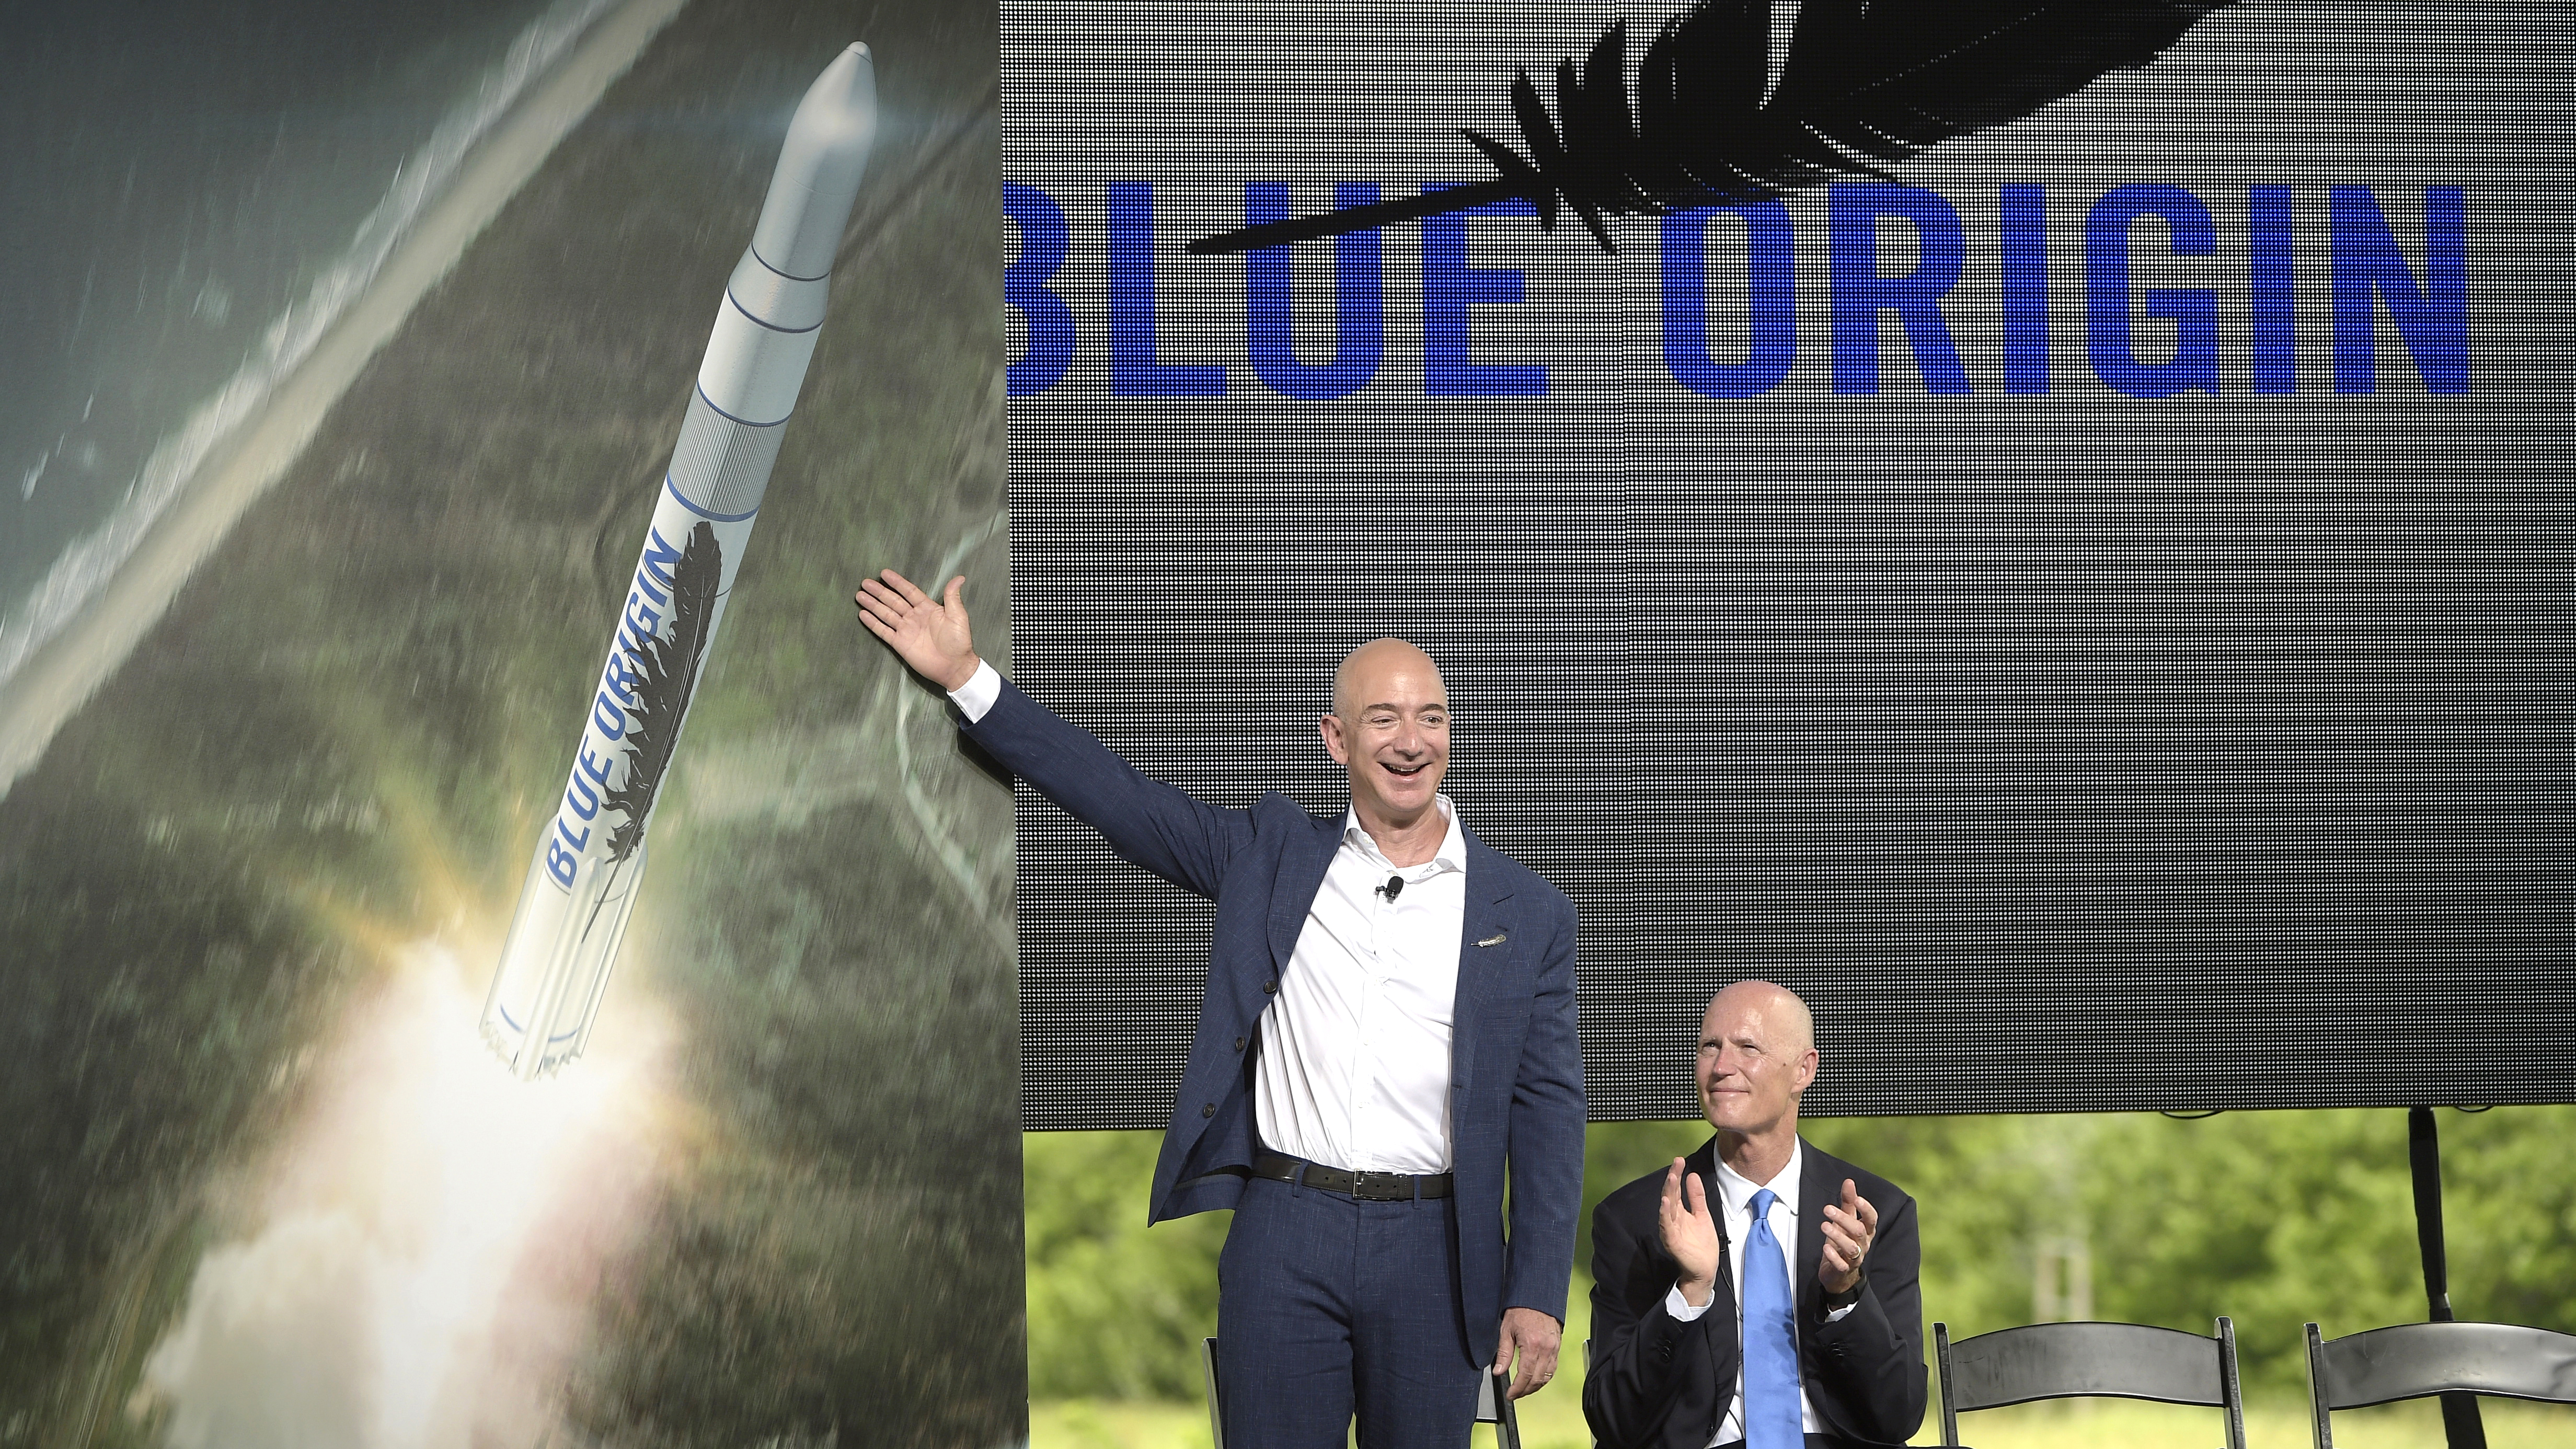 Amazon CEO Jeff Bezos, left, unveils the new Blue Origin rocket, as Florida Gov. Rick Scott, right, applauds during a news conference at the Cape Canaveral Air Force Station in Cape Canaveral, Fla., Tuesday, Sept. 15, 2015. Bezos announced a $200 million investment to build the rockets and capsules in the state and launch them using the historic Launch Complex 36.